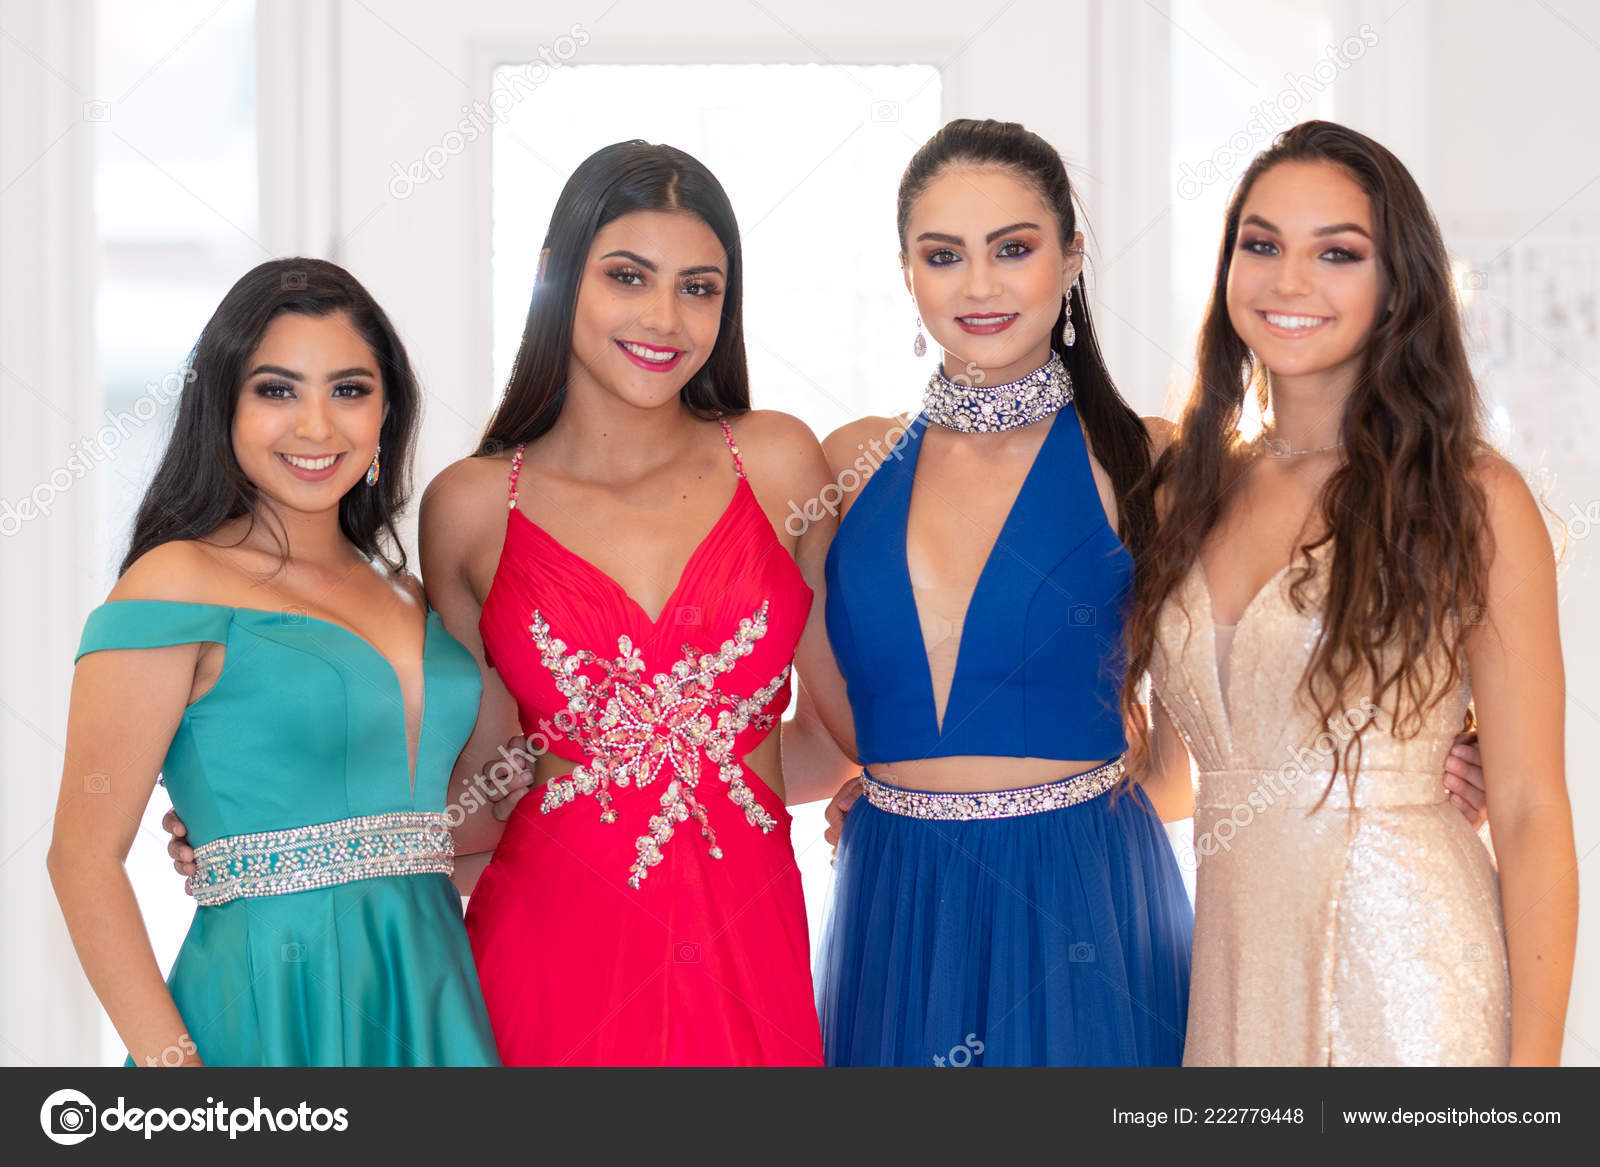 Teen girls going to a prom